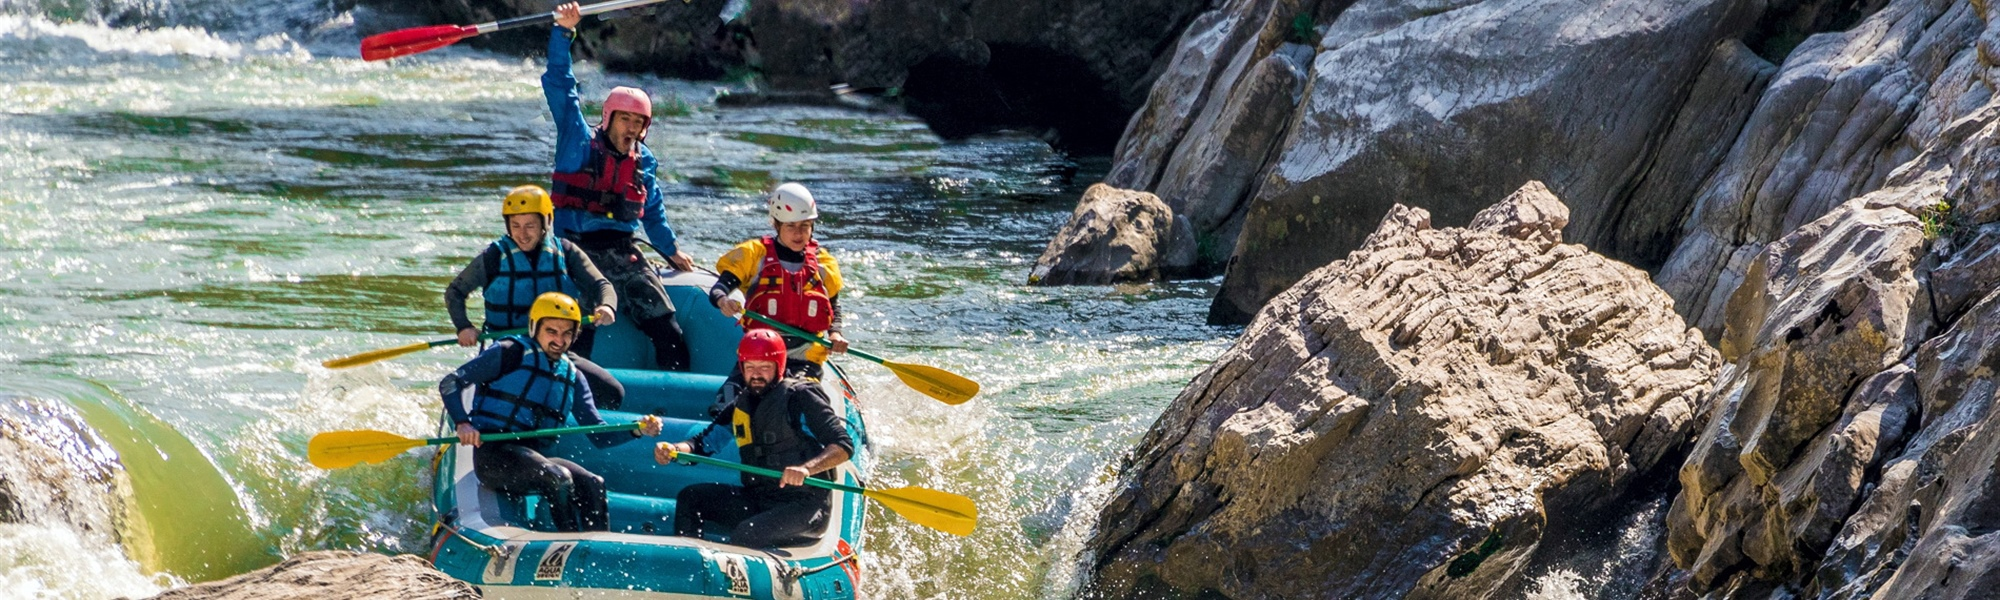 Rafting In Lousios and Alfios Rivers, Peloponesse, Greece